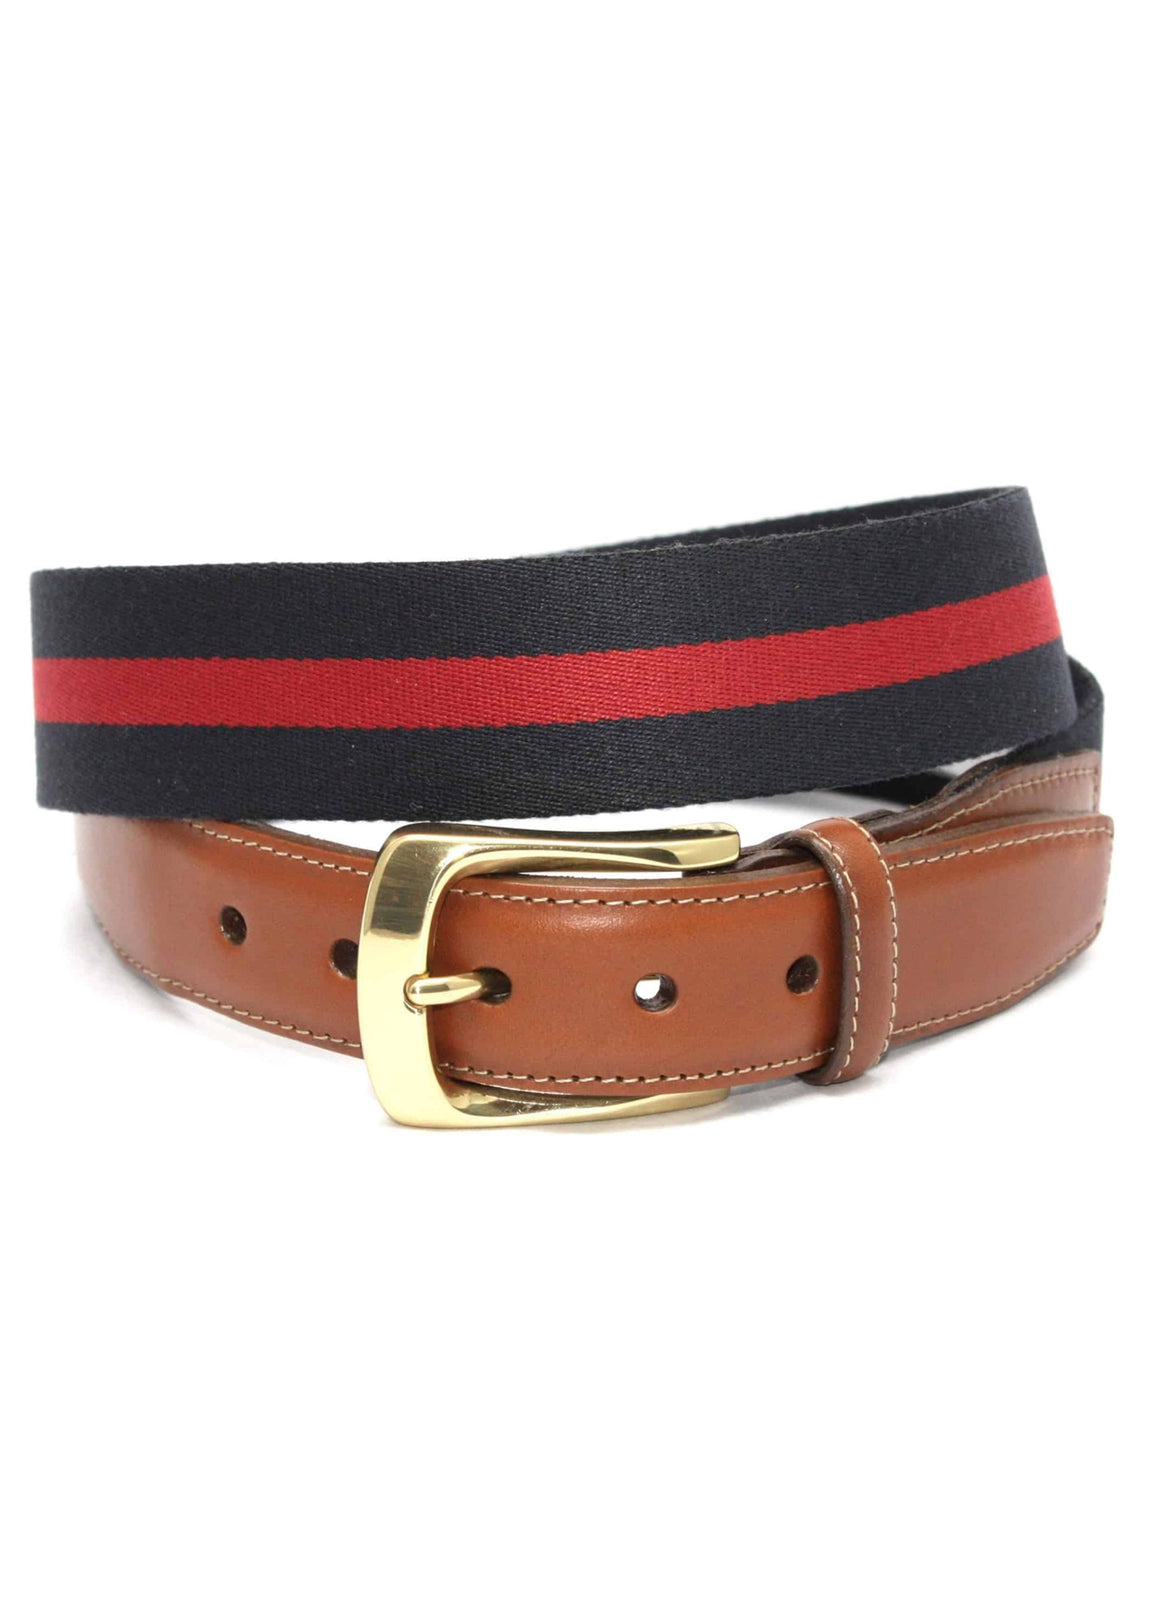 Torino European Ribbed Surcingle Belt | Navy Blue with Red